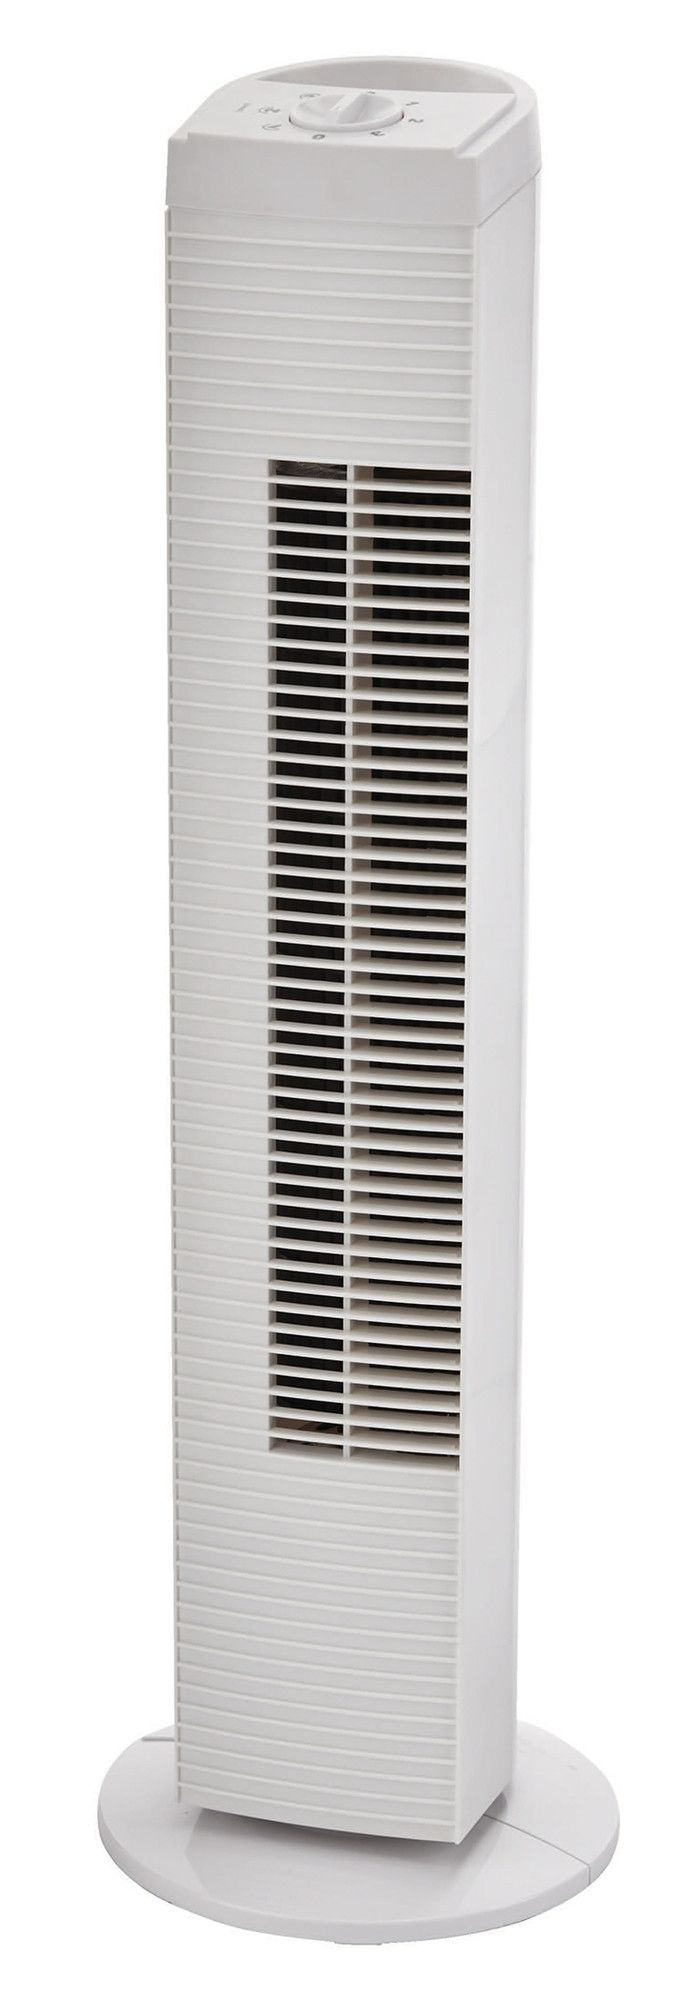 "29.8"" Oscillating Tower Fan"